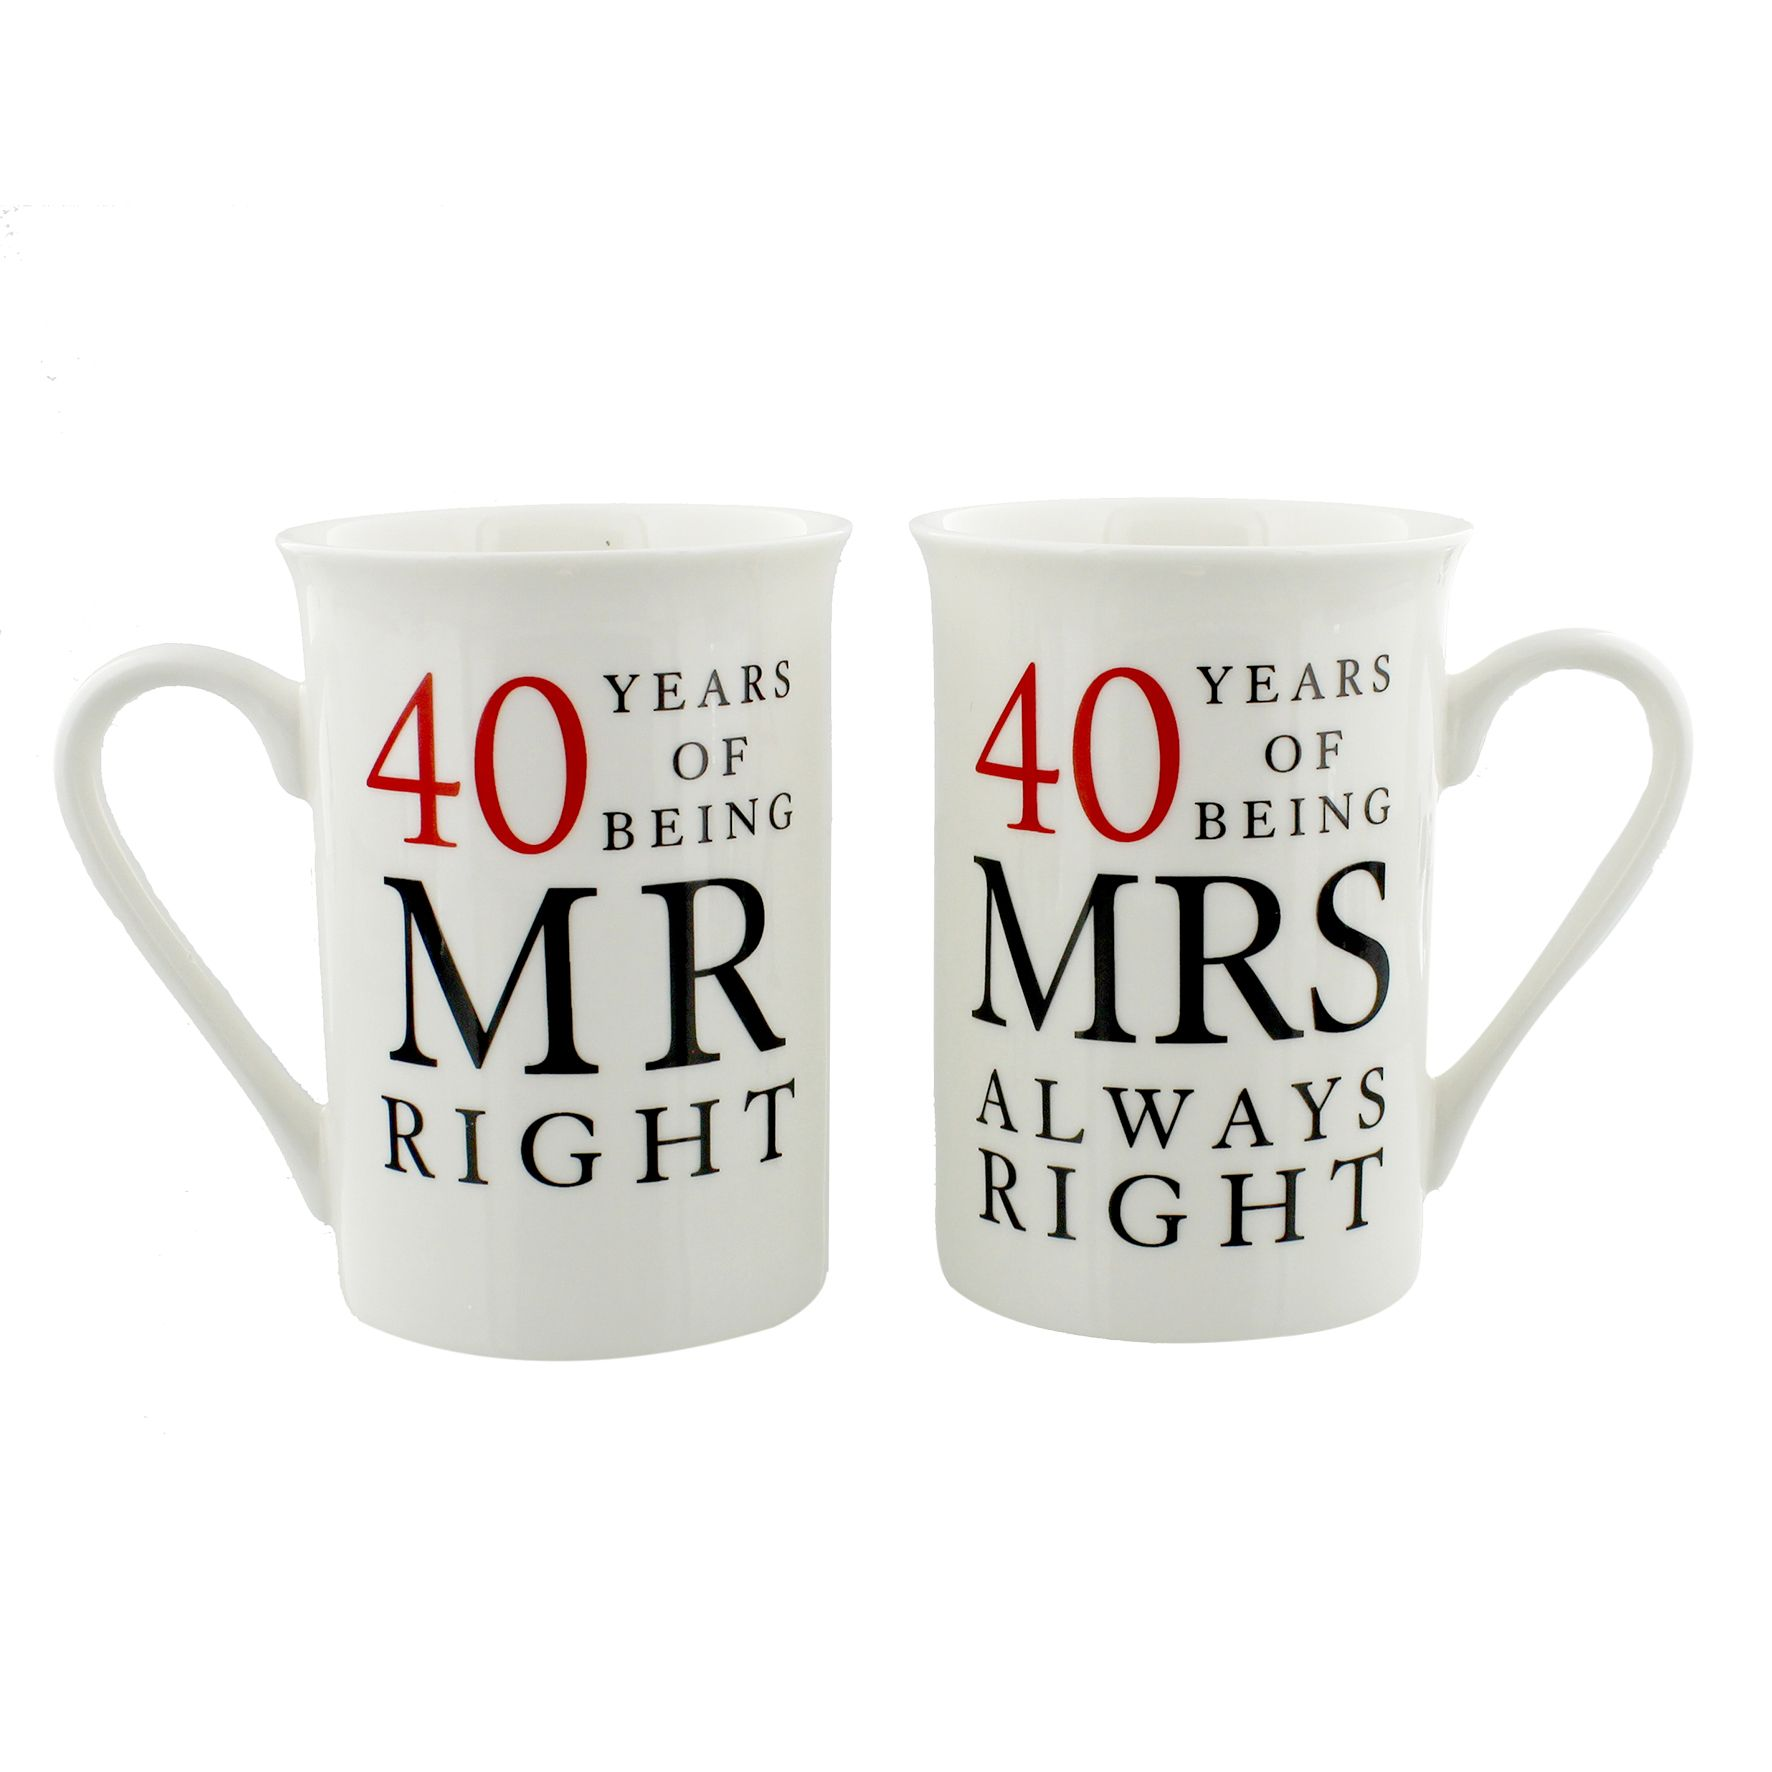 Wedding Gift For 40 Year Old Couple : 40th Ruby Wedding Anniversary Mr & Mrs Mug Gift Set - 40 years of ...